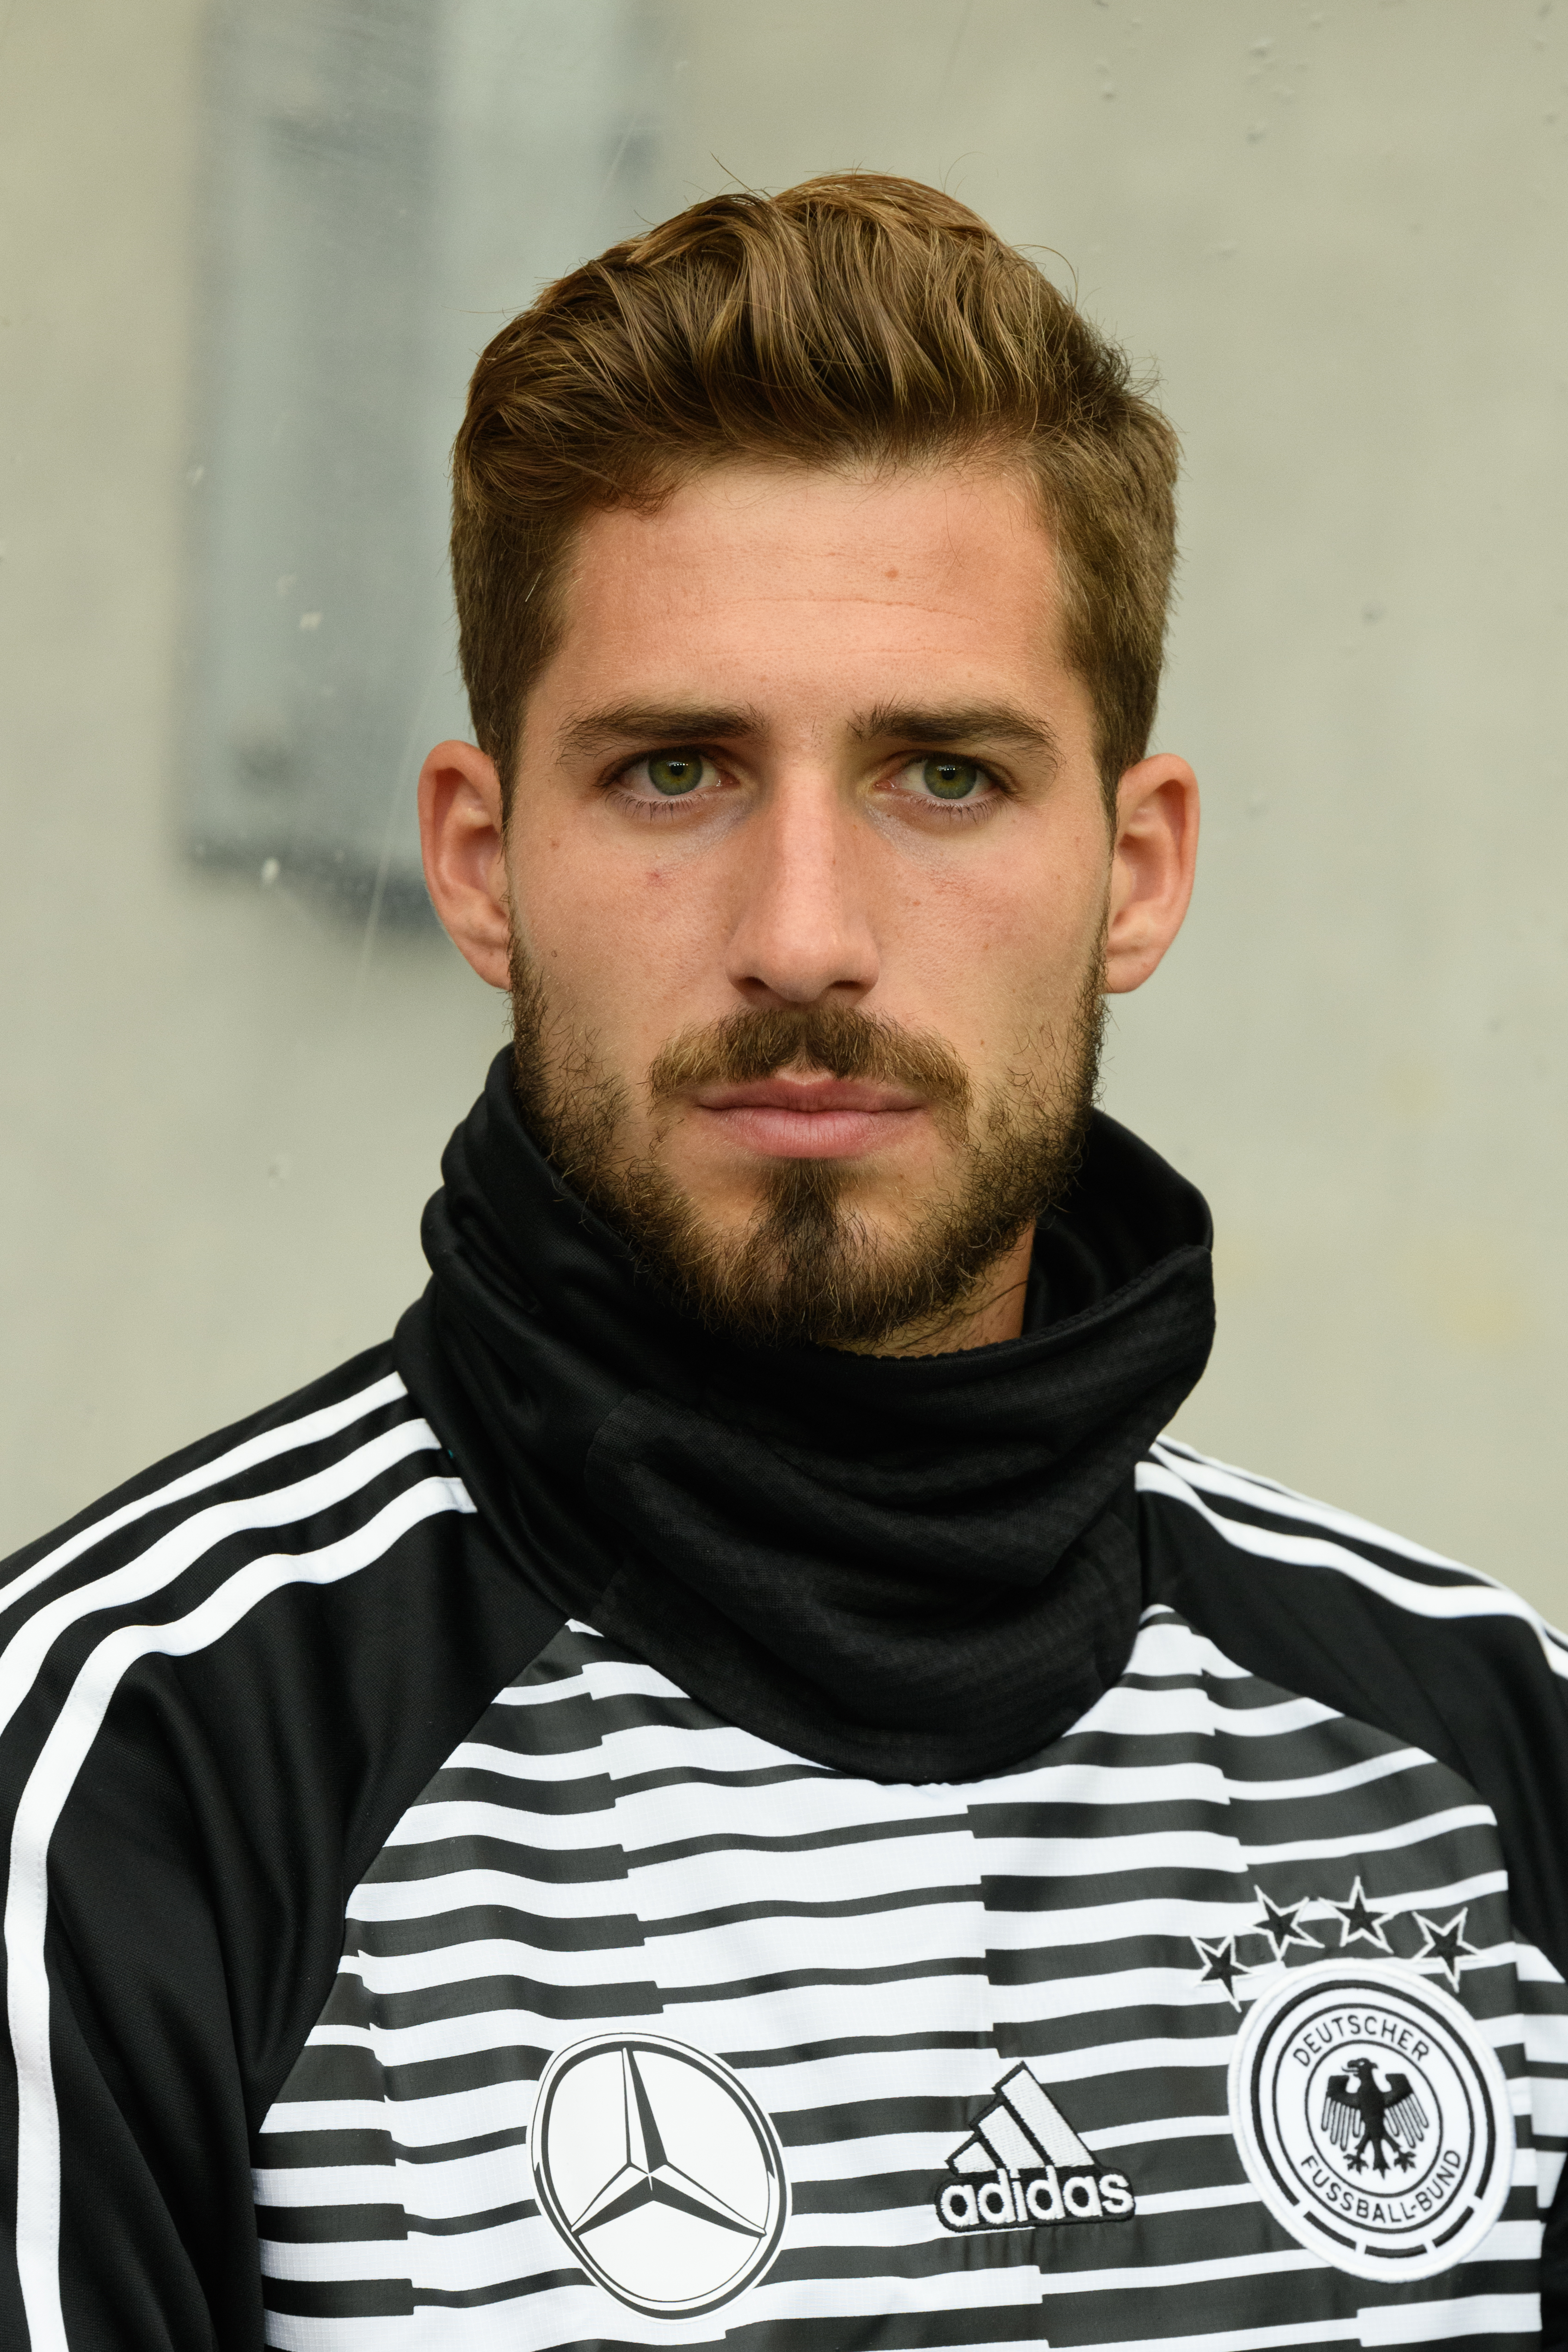 The 28-year old son of father (?) and mother(?) Kevin Trapp in 2018 photo. Kevin Trapp earned a  million dollar salary - leaving the net worth at 6 million in 2018